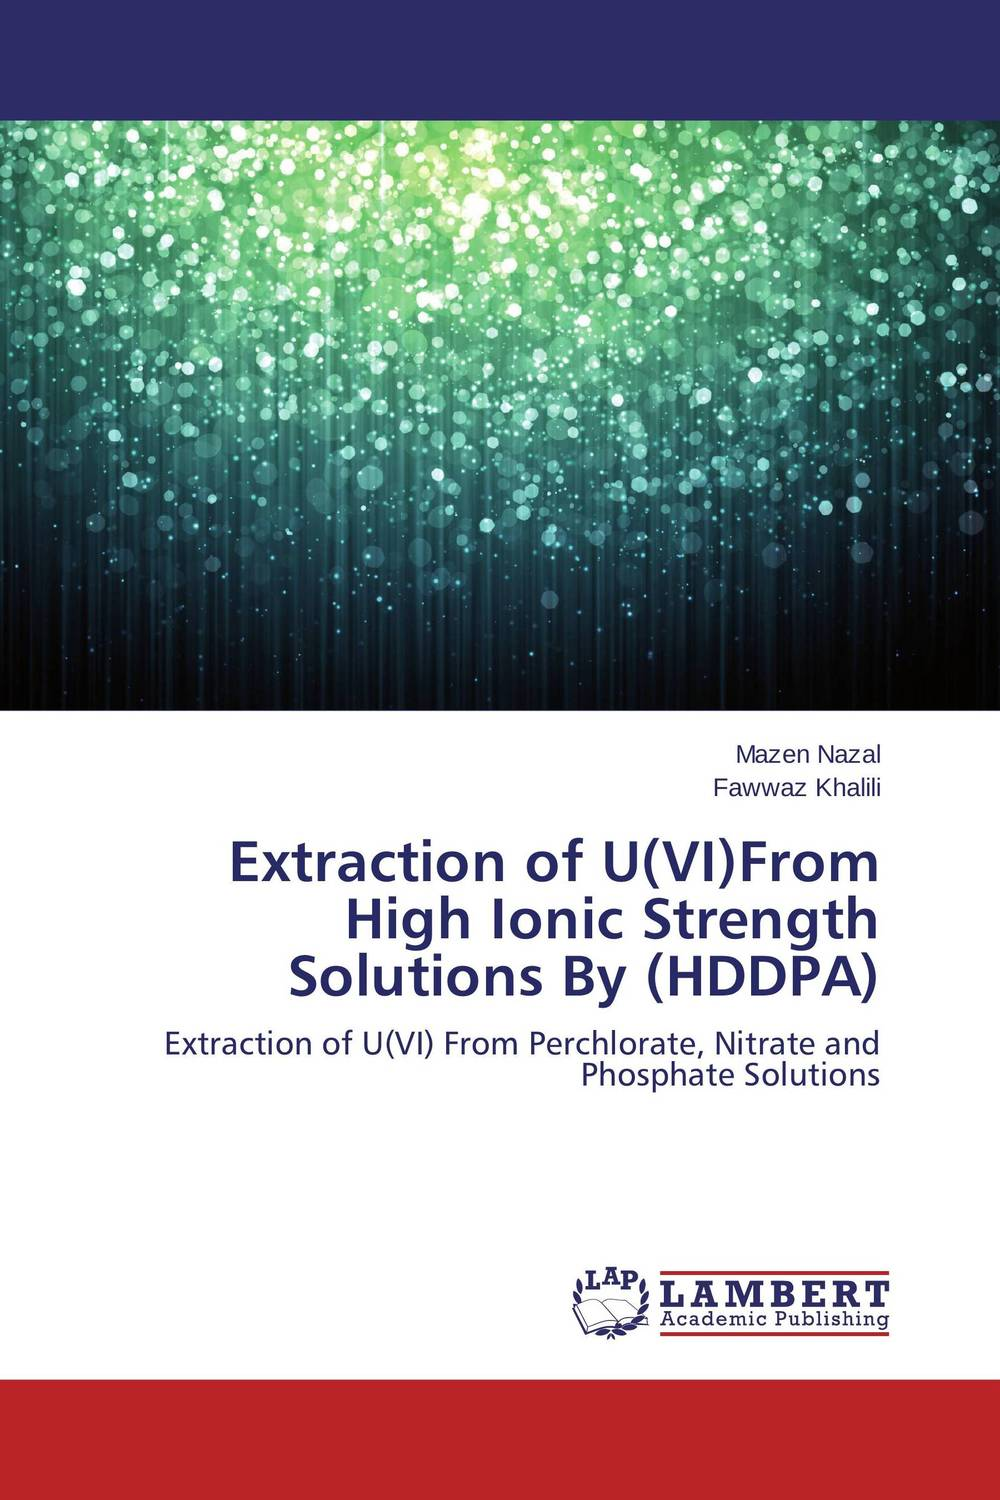 Extraction of U(VI)From High Ionic Strength Solutions By (HDDPA) user preference extraction from brain signals